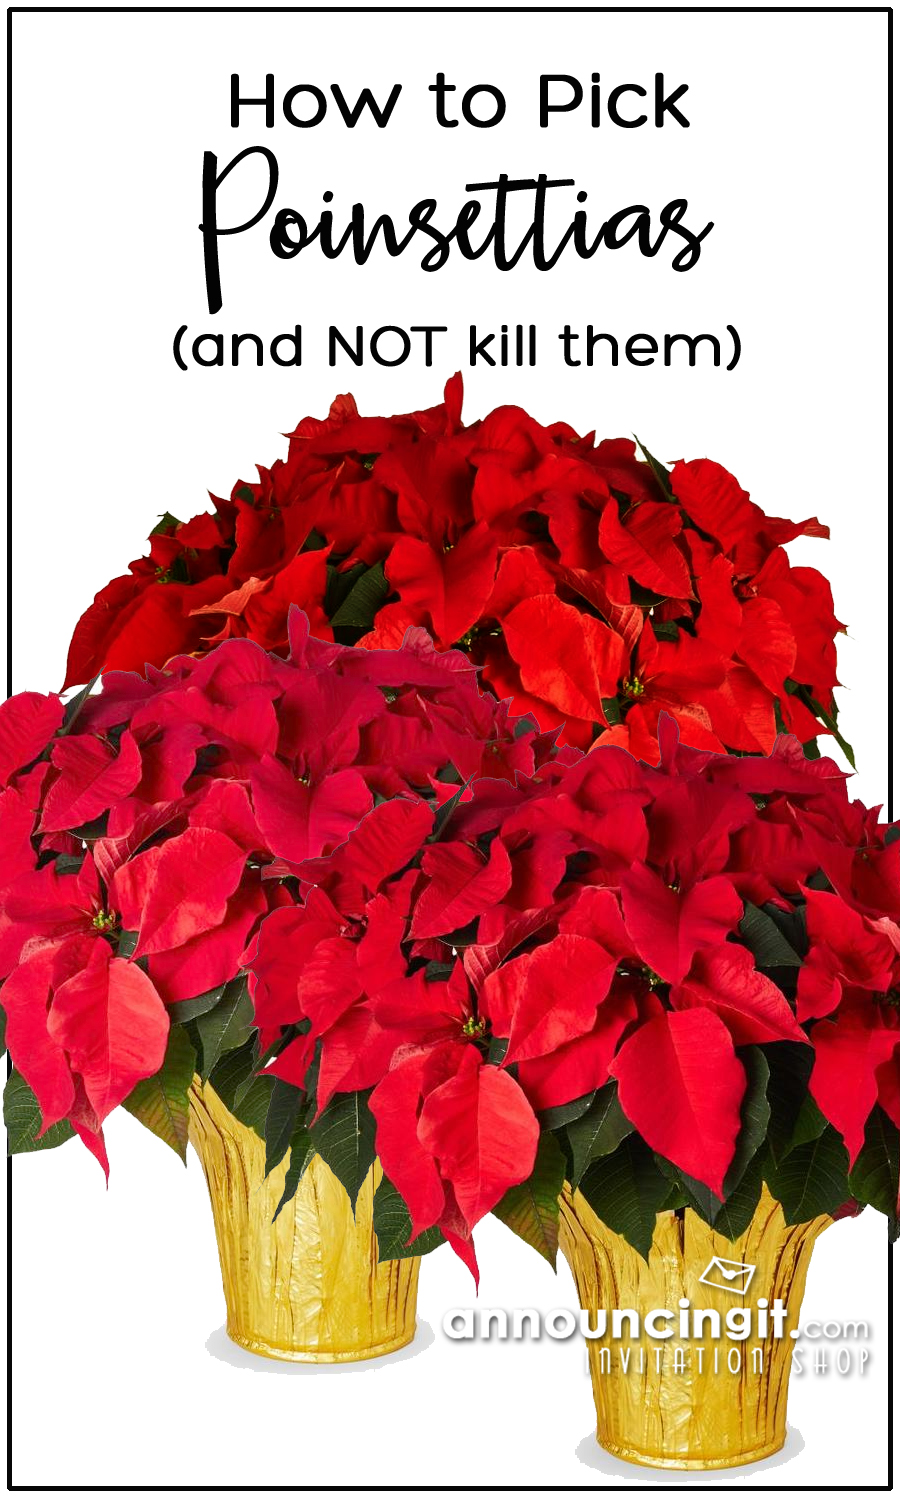 Tips on Shopping for the Perfect Poinsettias for your Holiday Party (and how NOT to kill them!)